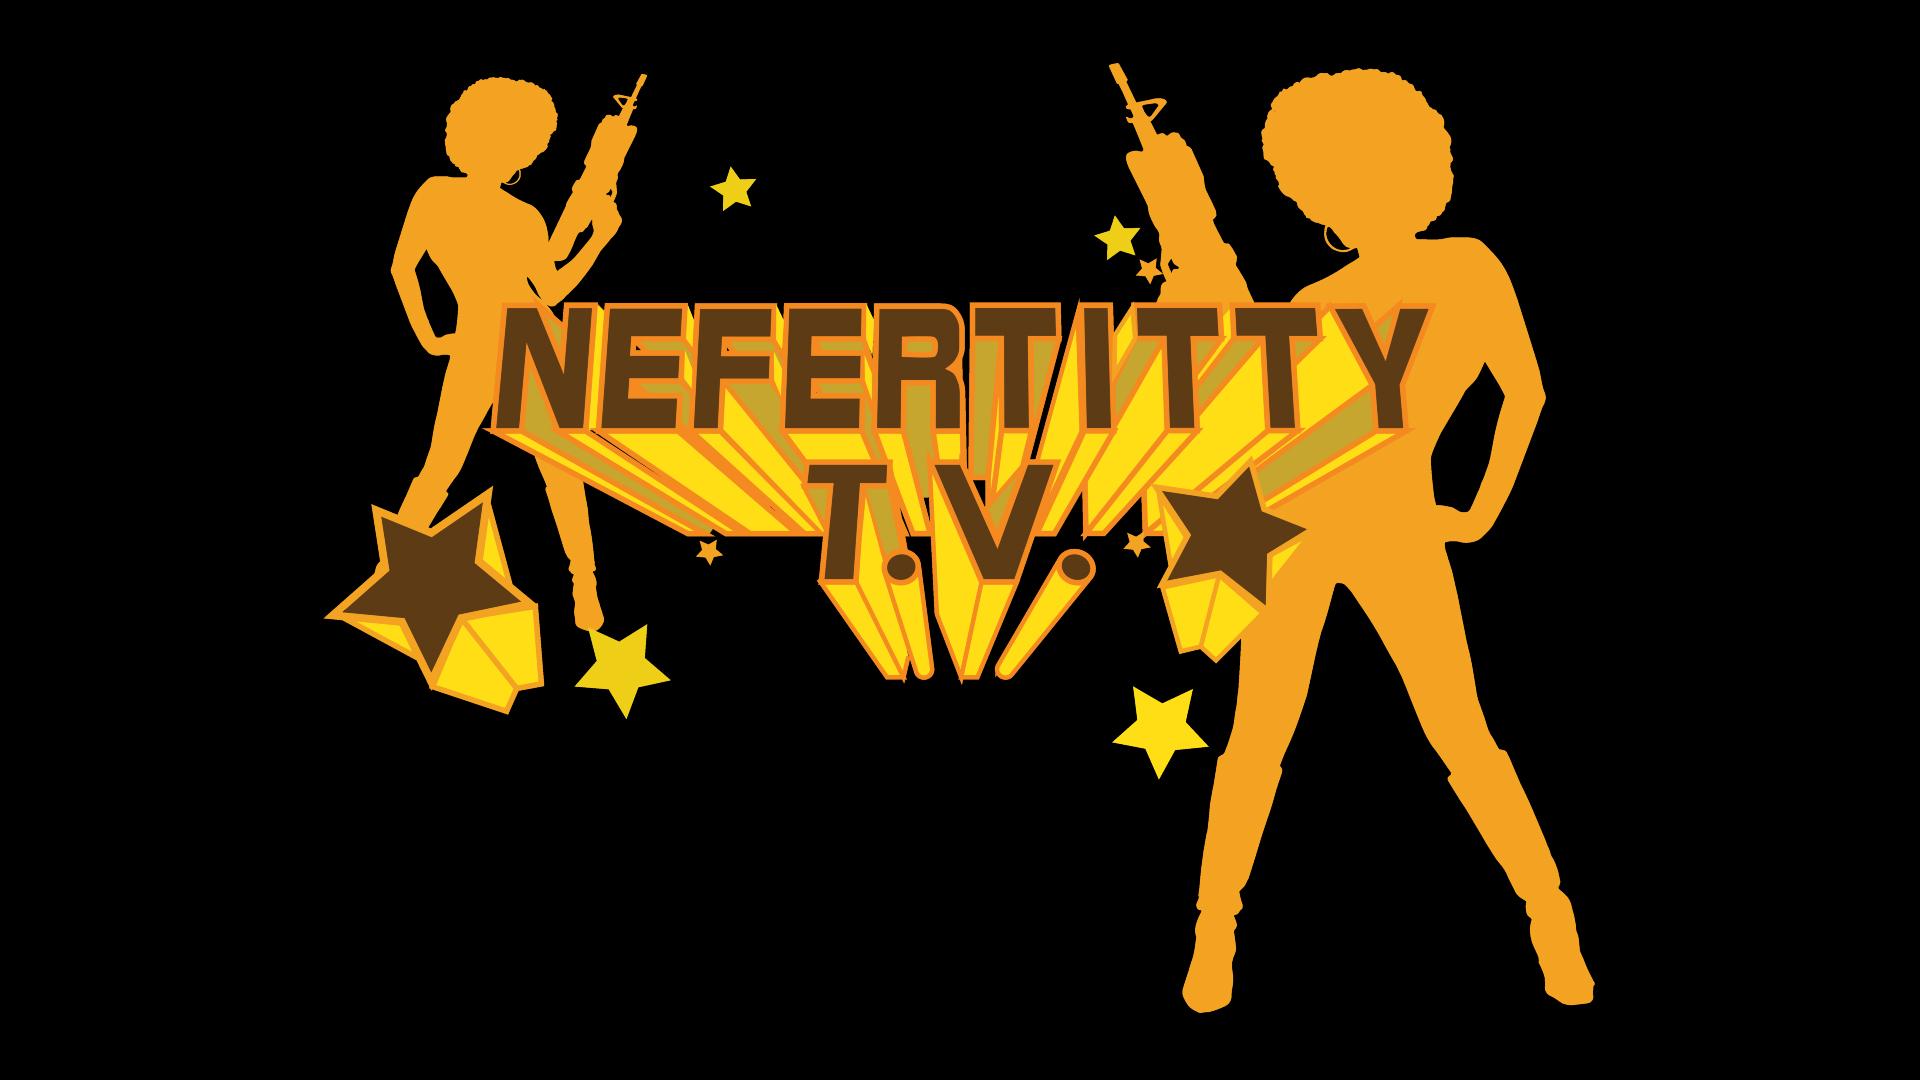 """Nefertitty TV is a TV series based on the film """"Nefertitty"""". Starring Maine Anders."""